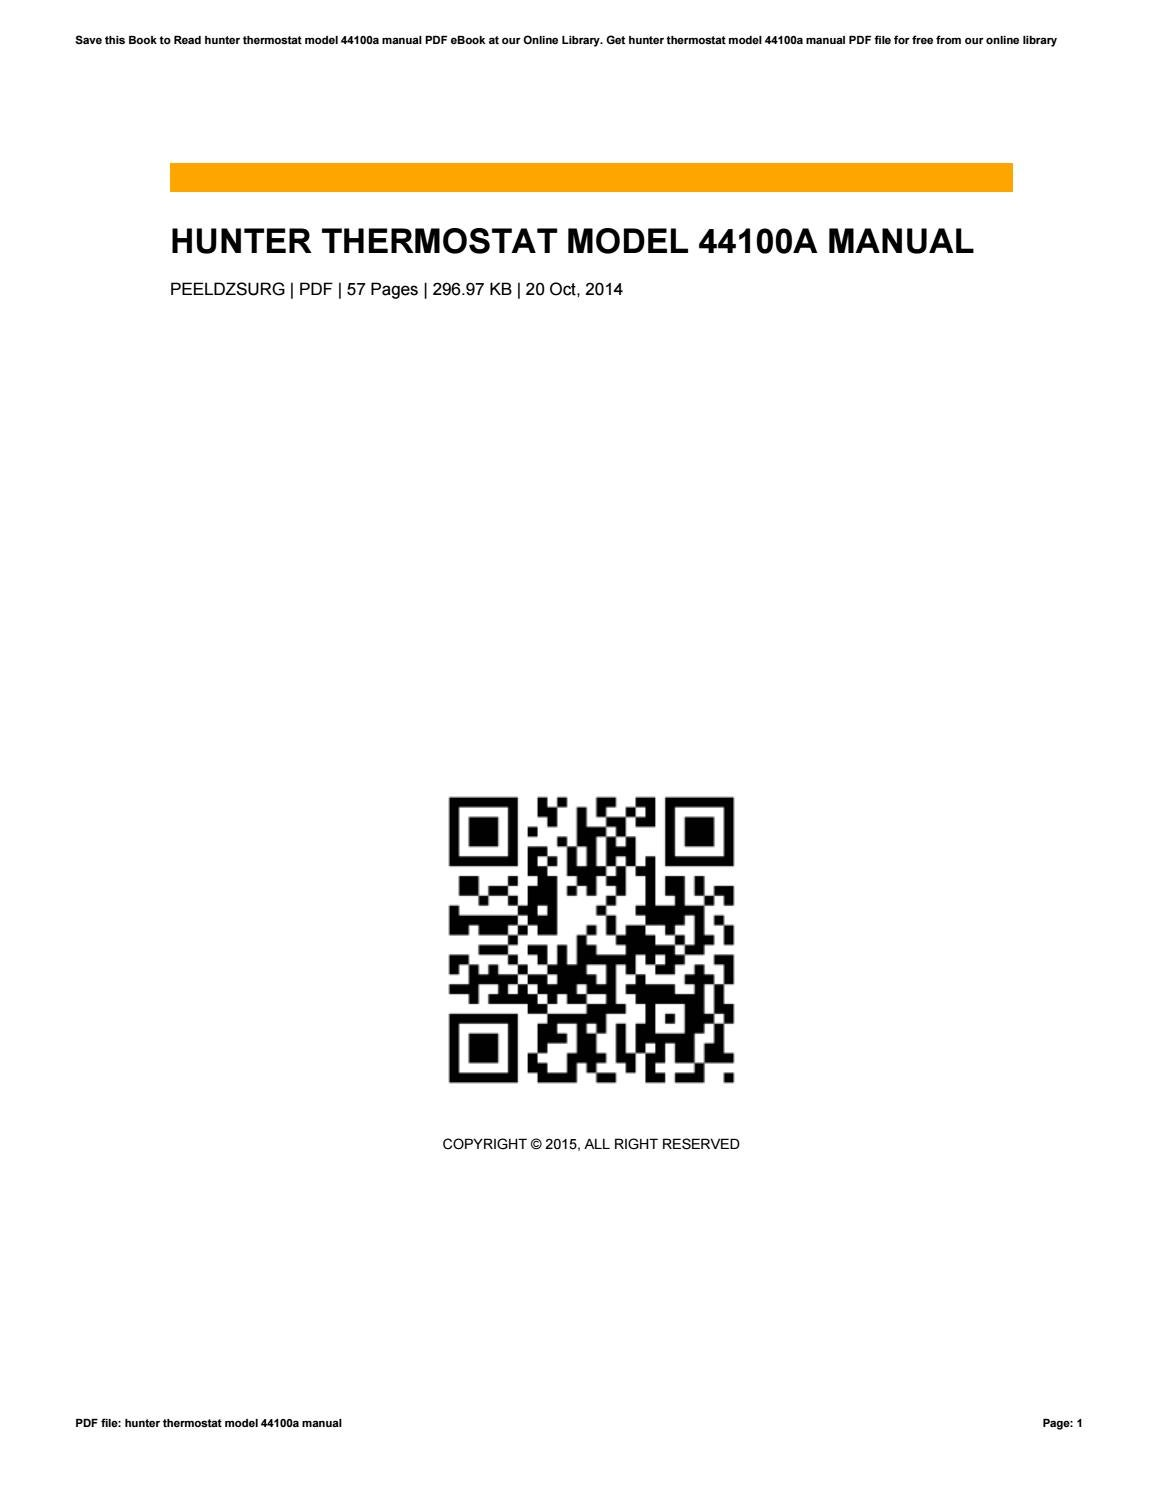 Hunter 5+2 day digital programmable thermostat programmable.